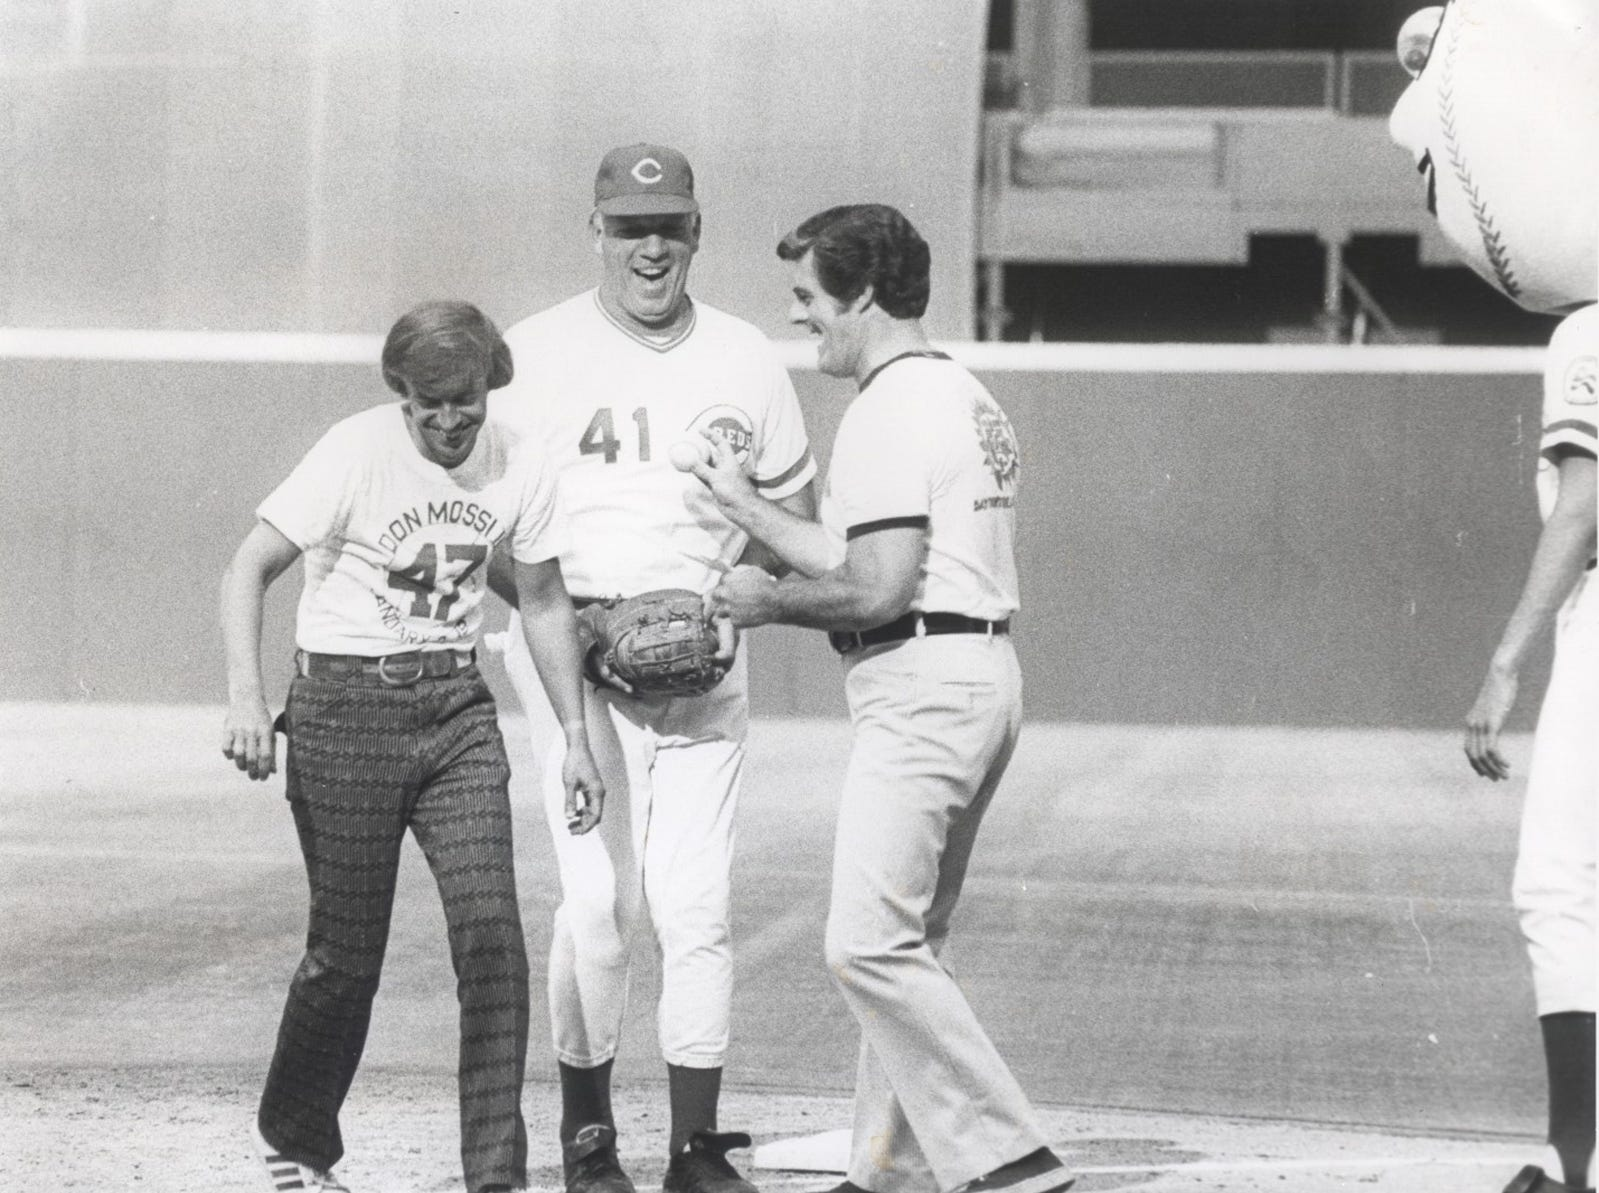 Nuxhall family photo Marty Brennaman, Joe Nuxhall and Bob Braun share a laugh on the Riverfront Stadium field in the 1970s. UNDATED: NUXHALL FAMILY PHOTO: Marty Brennaman, Joe Nuxhall and Bob Braun (WLW).